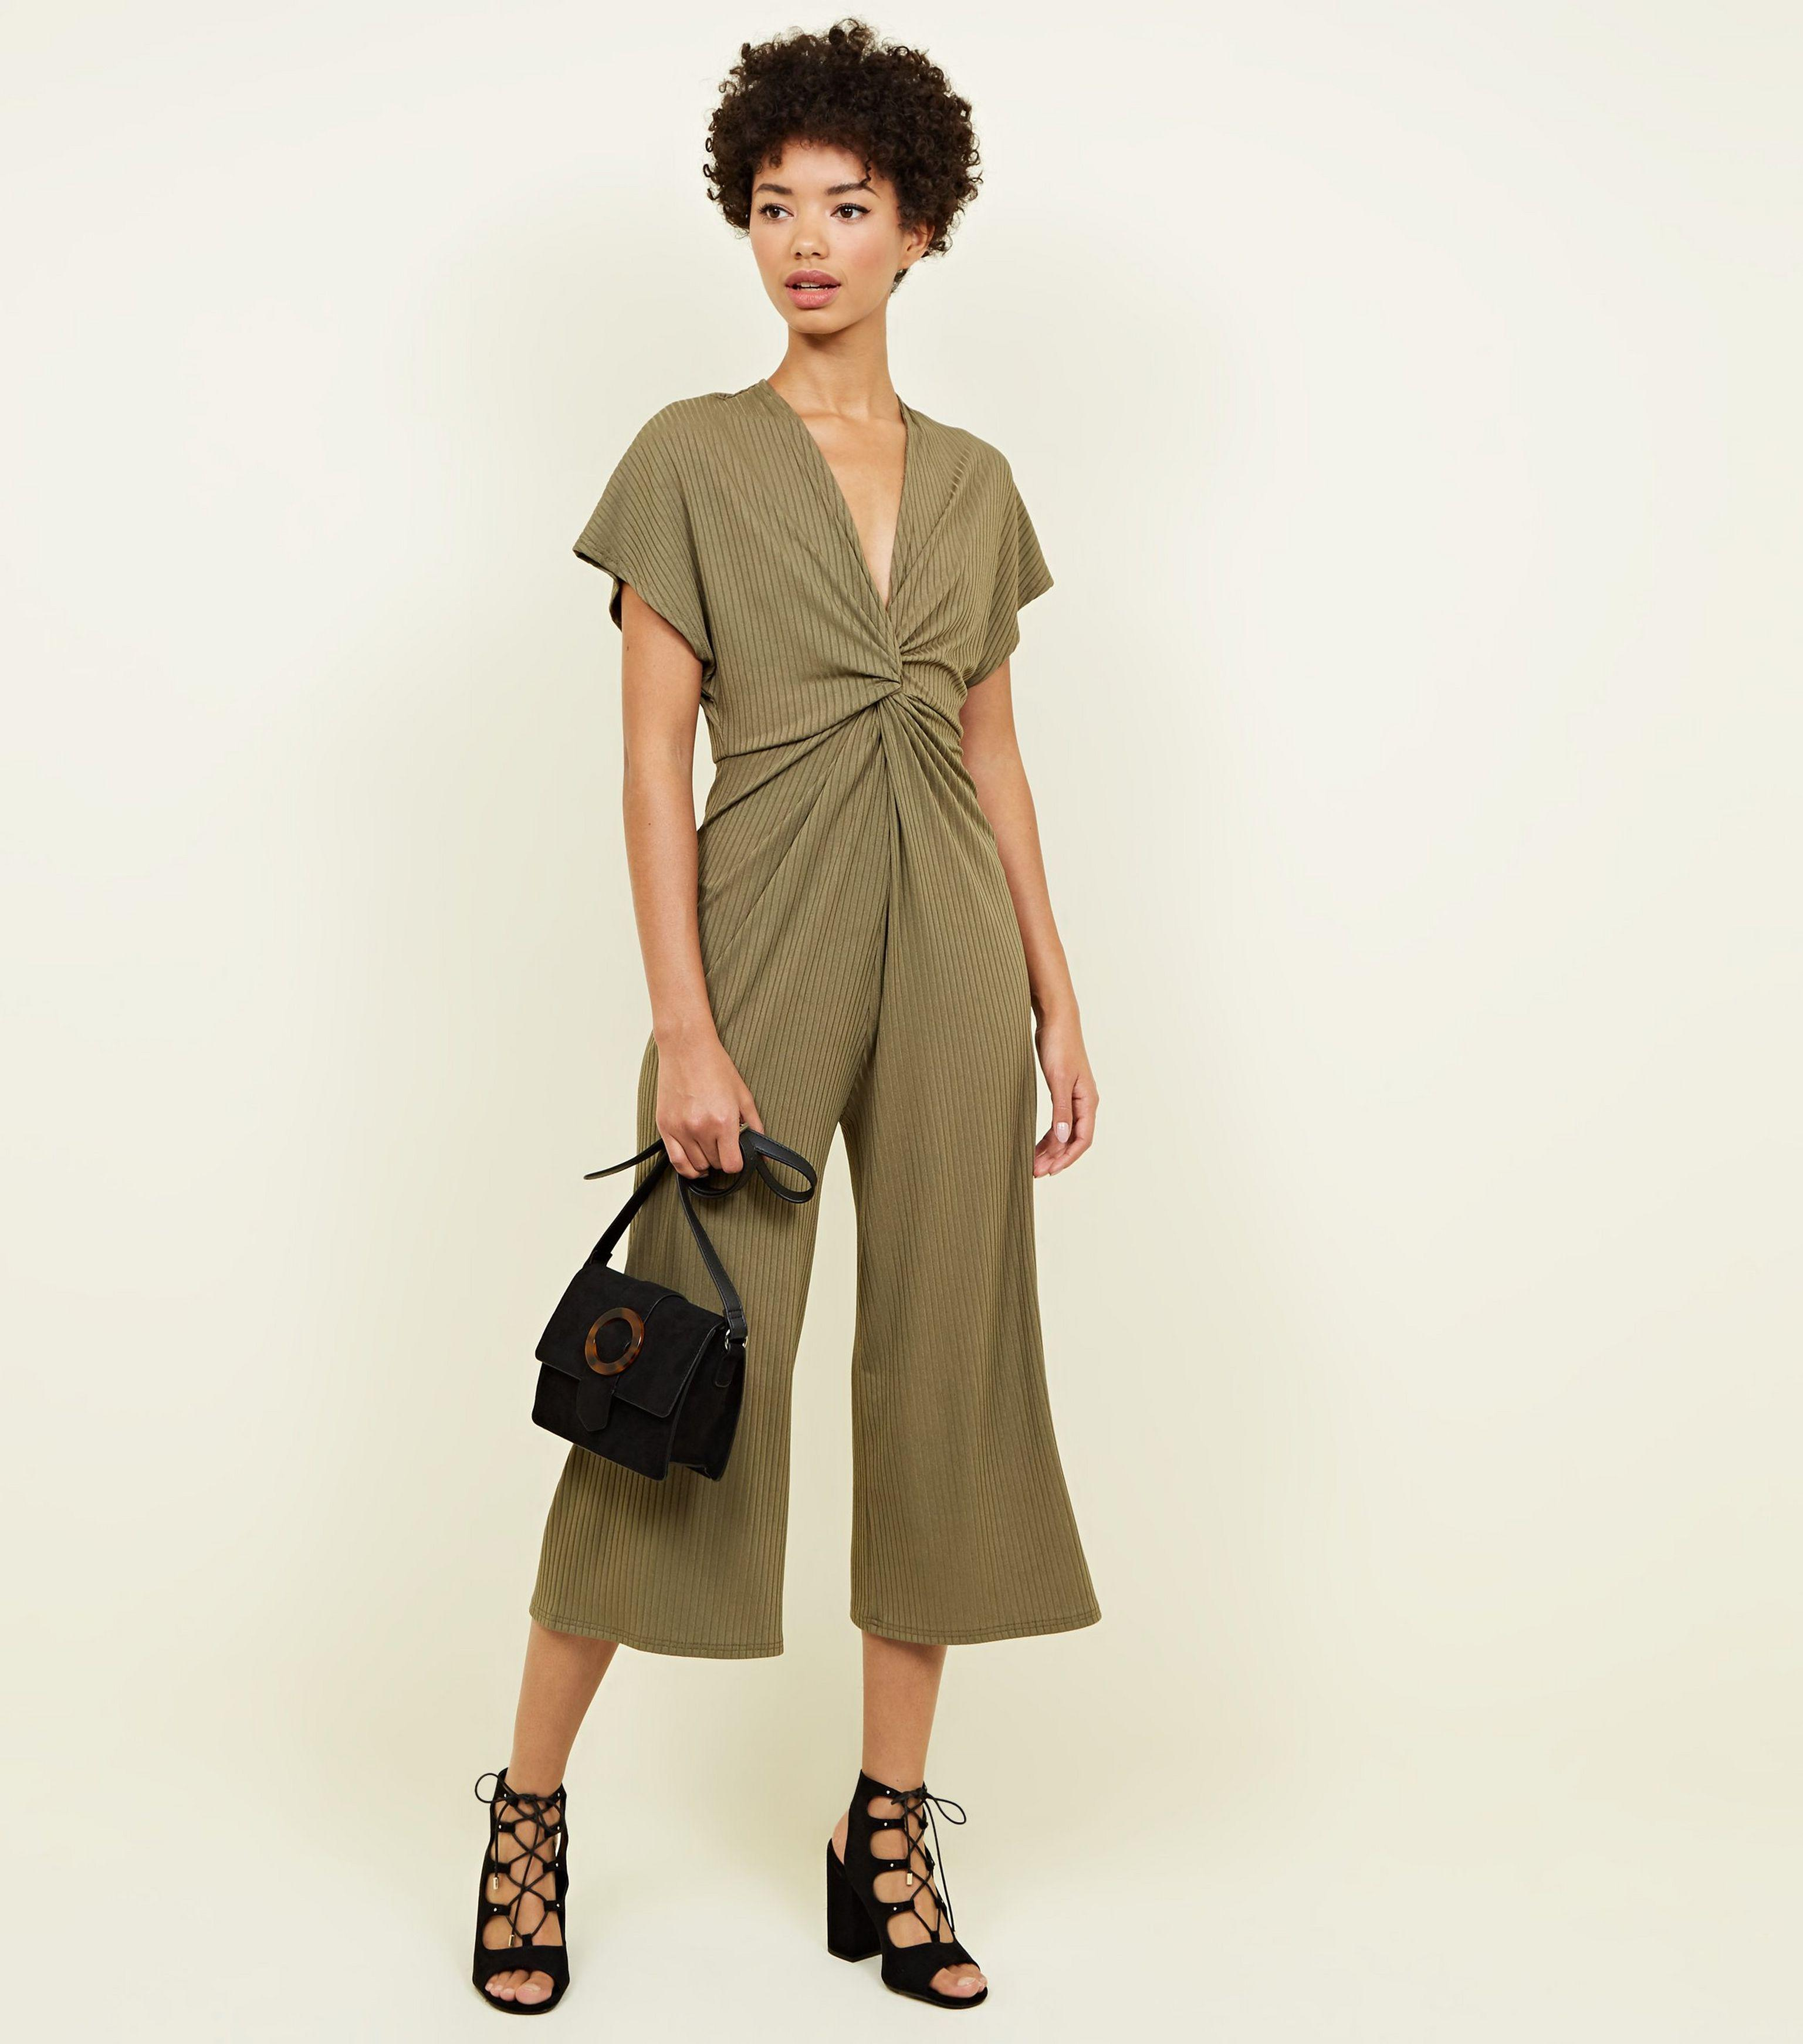 0120805c4d3 New Look Khaki Ribbed Twist Front Culotte Jumpsuit in Natural - Lyst